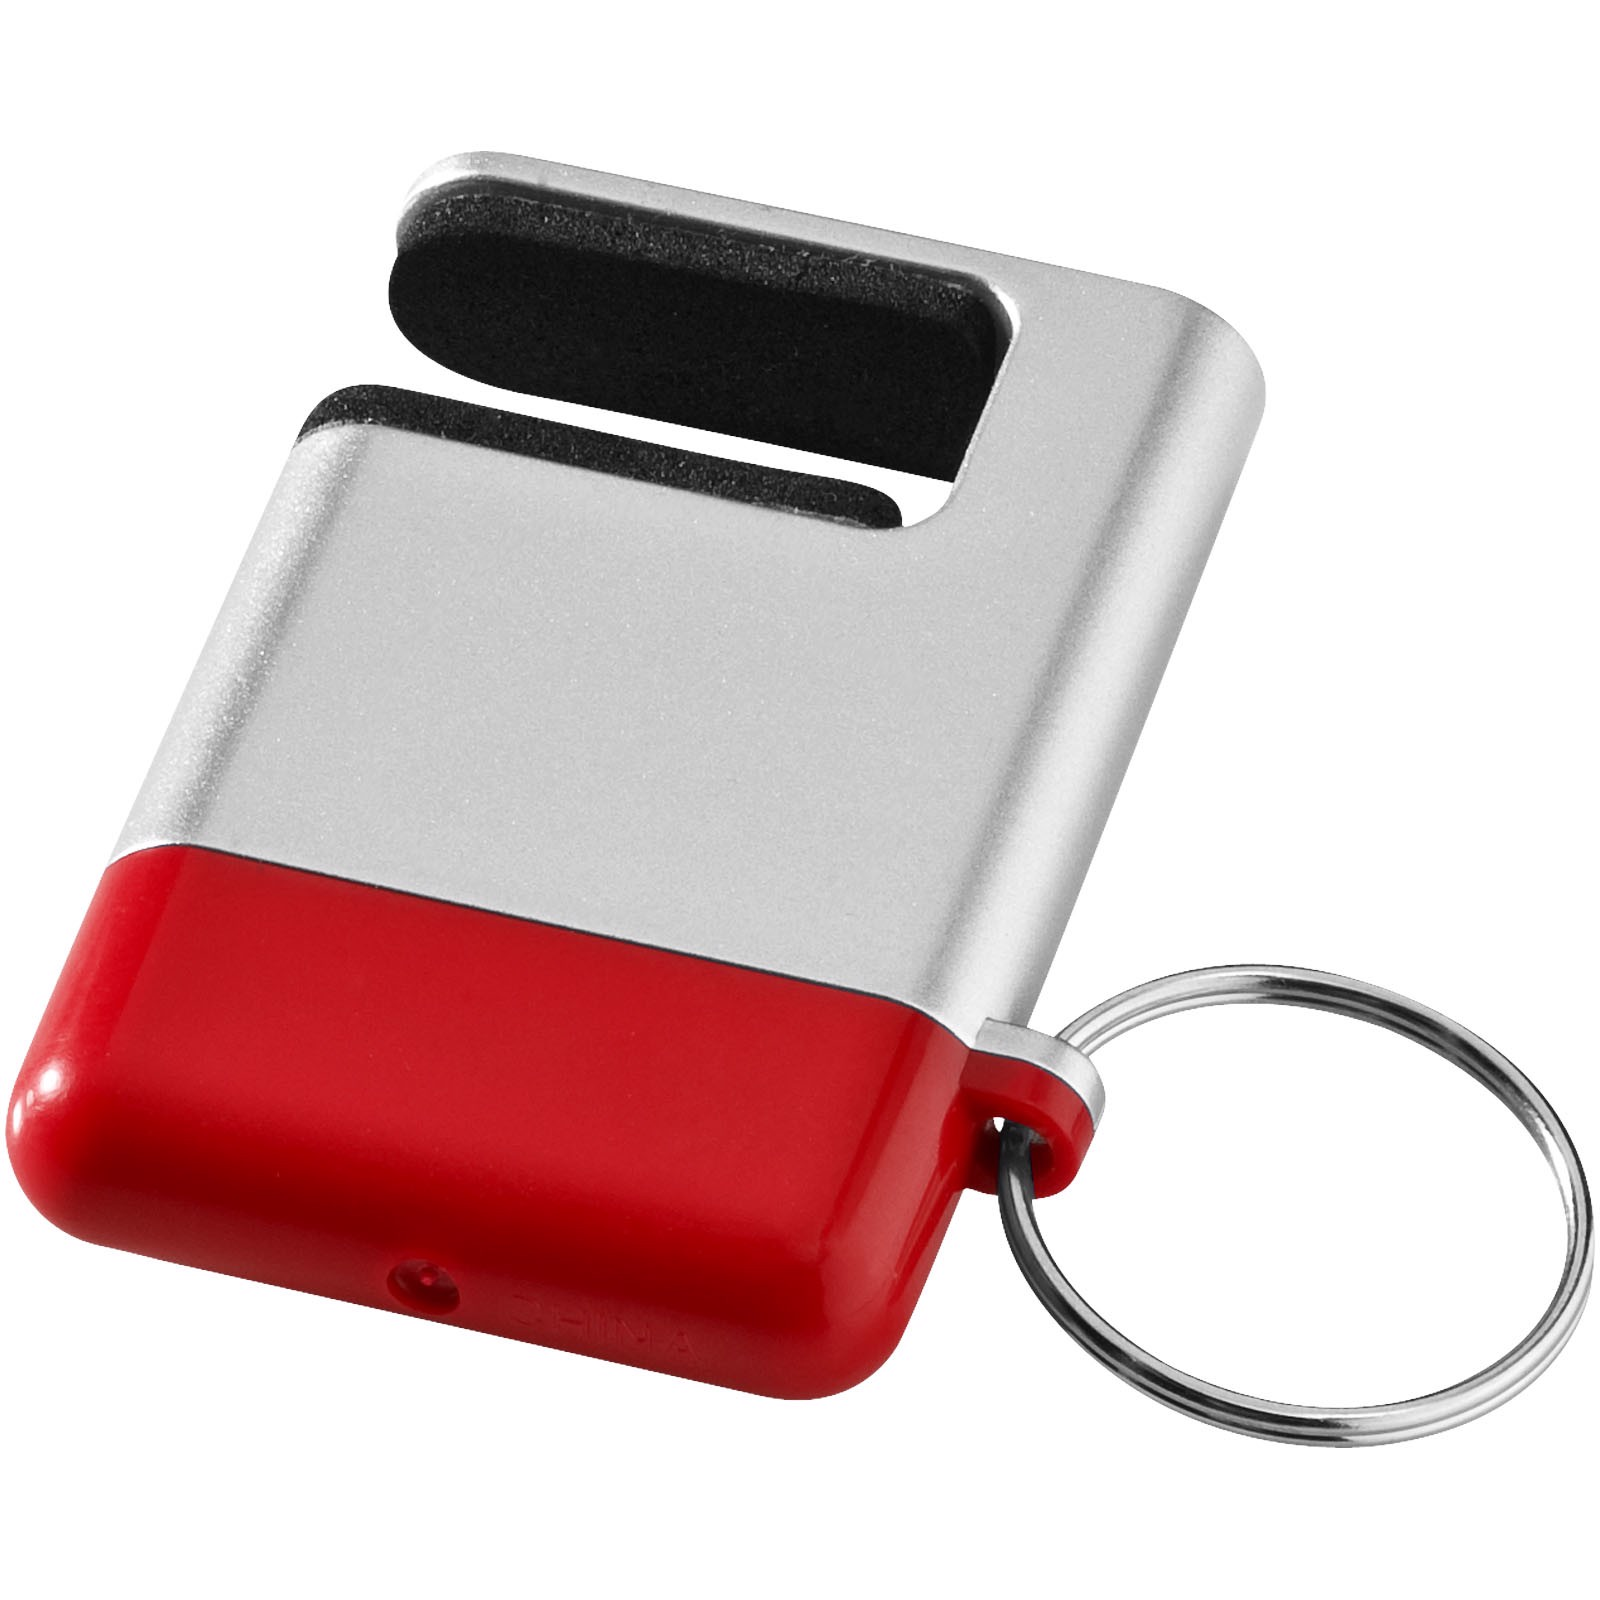 Gogo screen cleaner and smartphone holder - Silver / Red